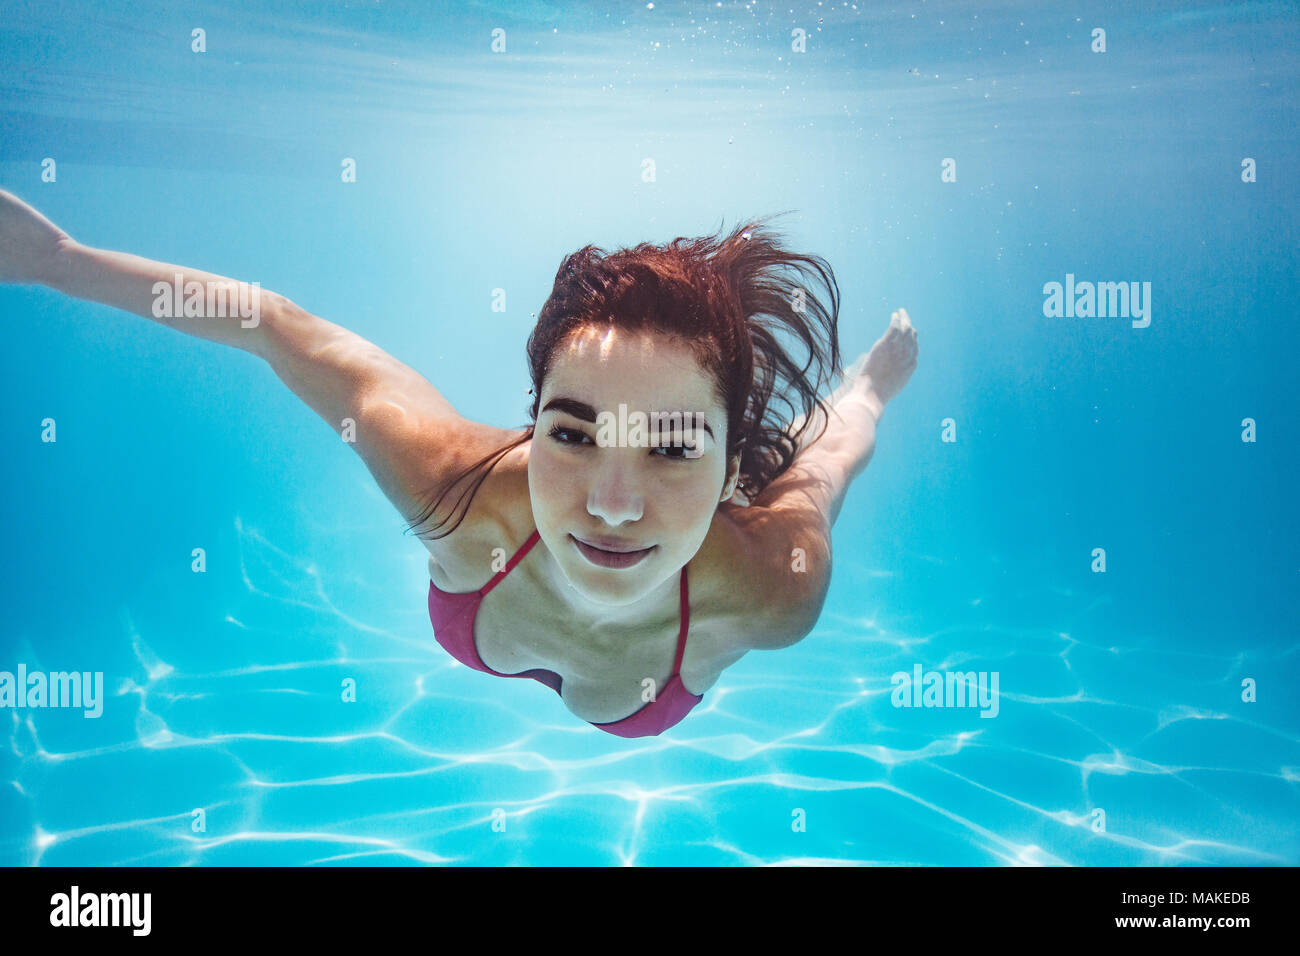 hotel woman underwater in pool stockfotos hotel woman. Black Bedroom Furniture Sets. Home Design Ideas